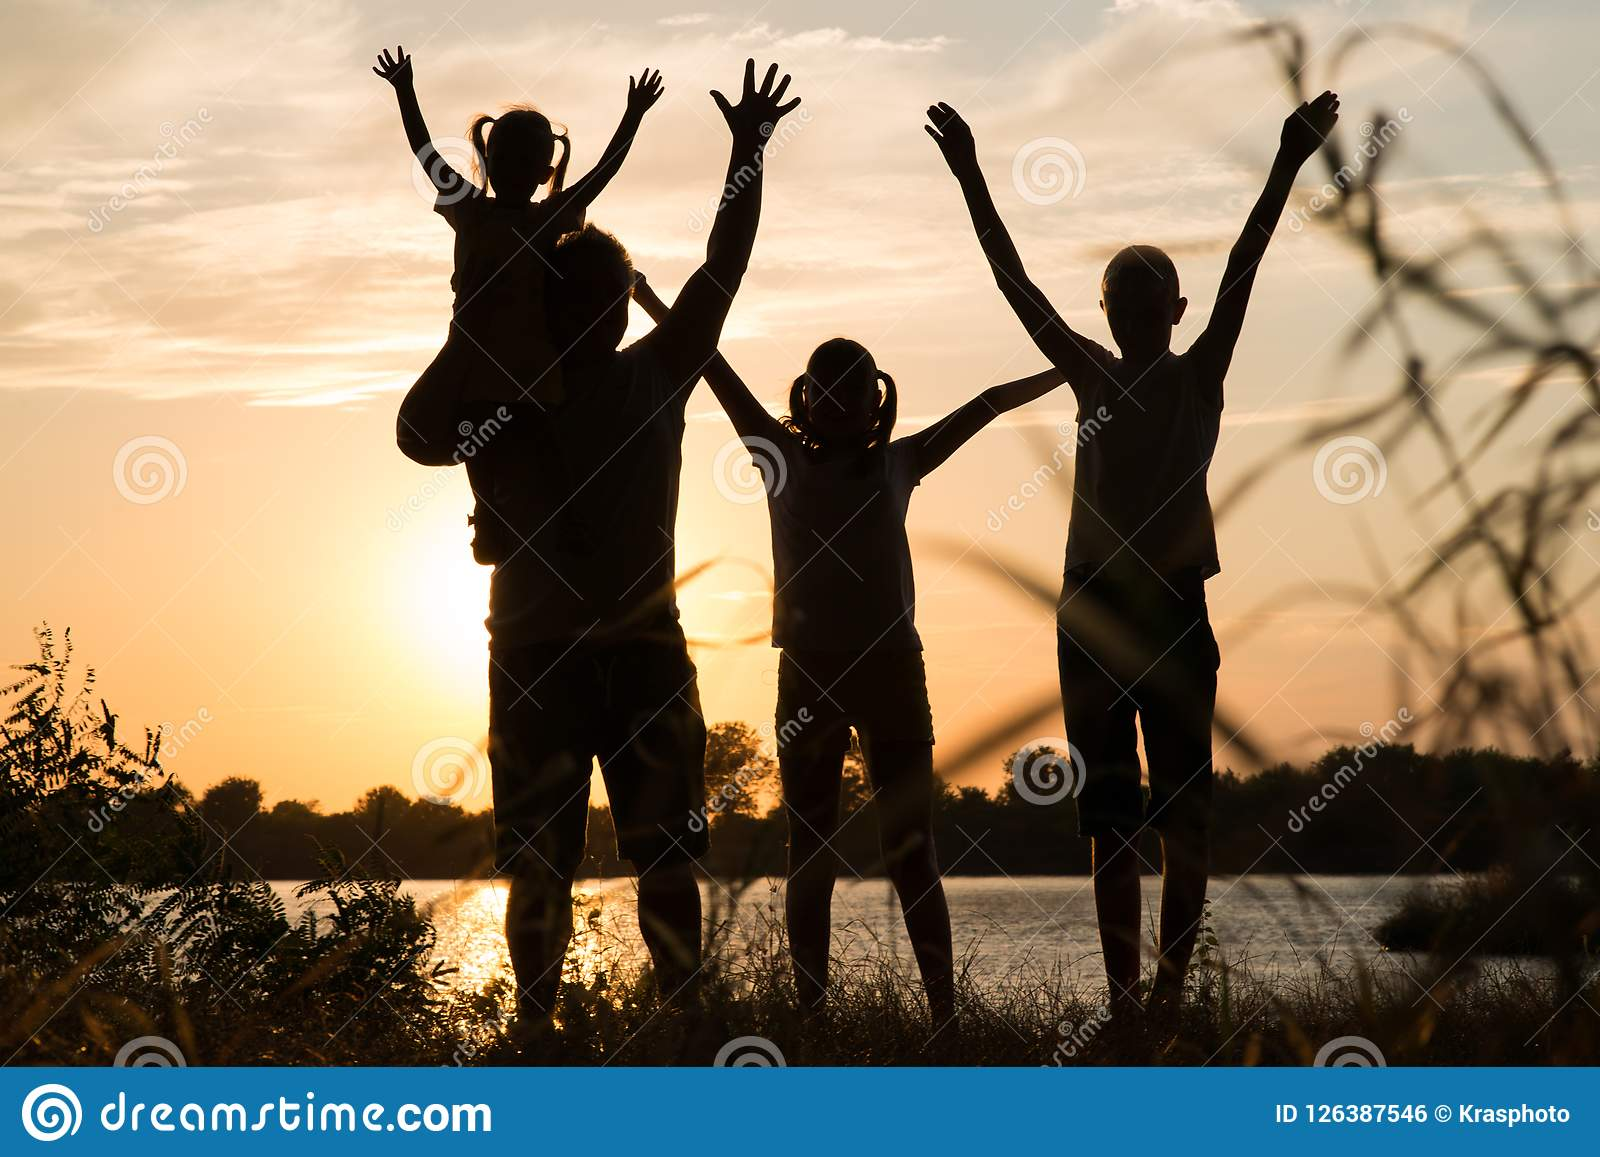 e5bb8c60845e8 Family Of Parents And Children Silhouettes At Sunset Stock Photo ...